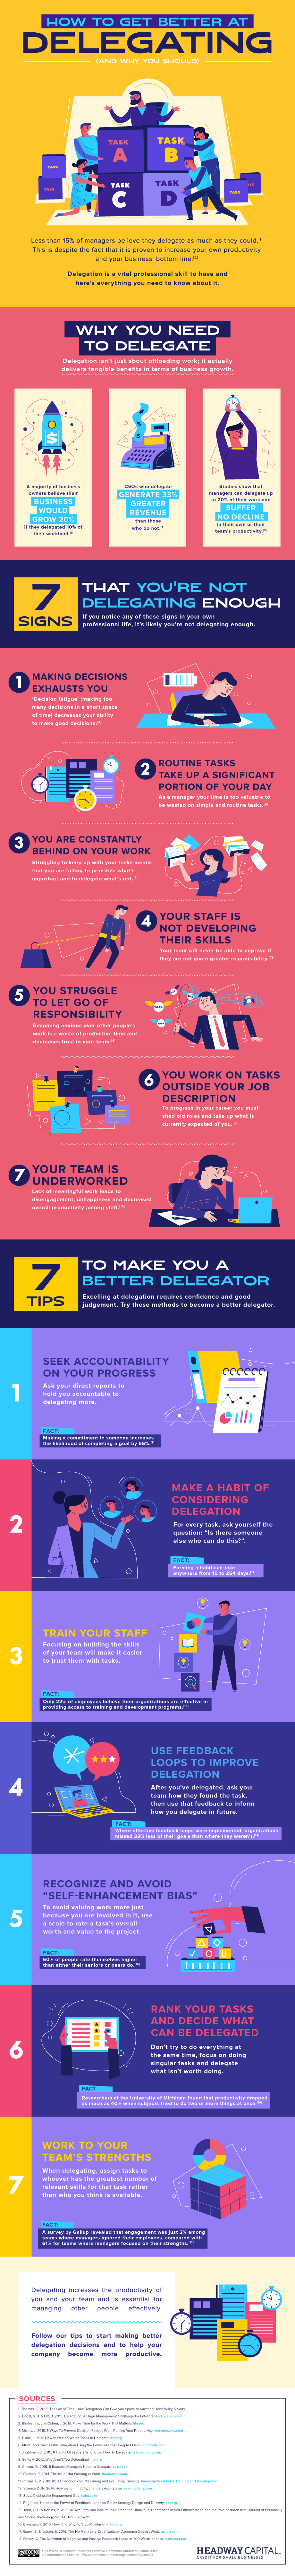 Infographic looks at effective delegation tactics